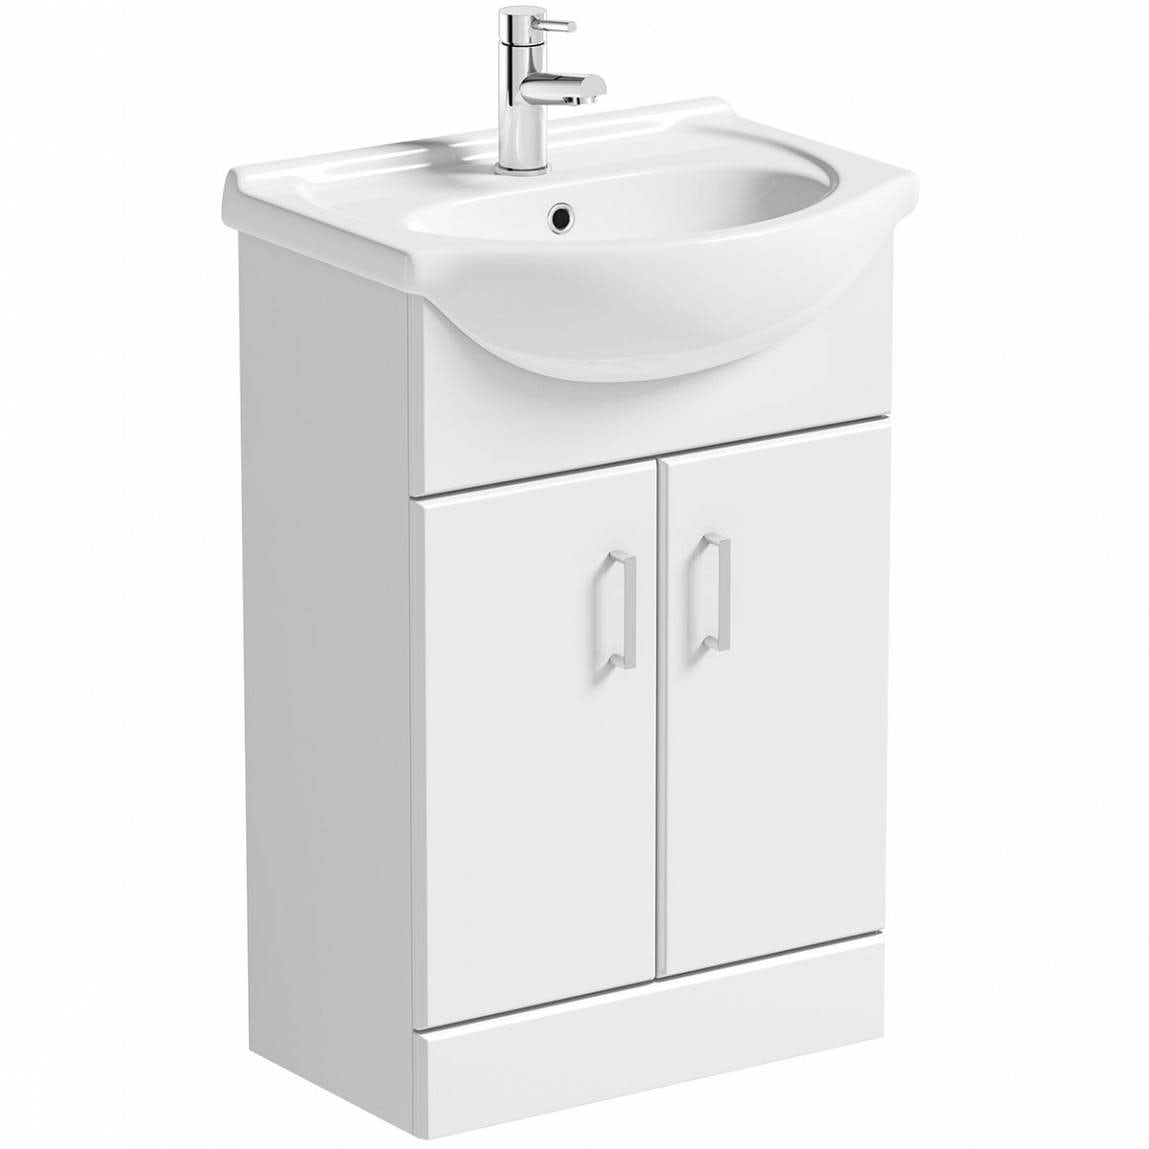 Sienna White Vanity Unit with Basin 550mm | VictoriaPlum.com